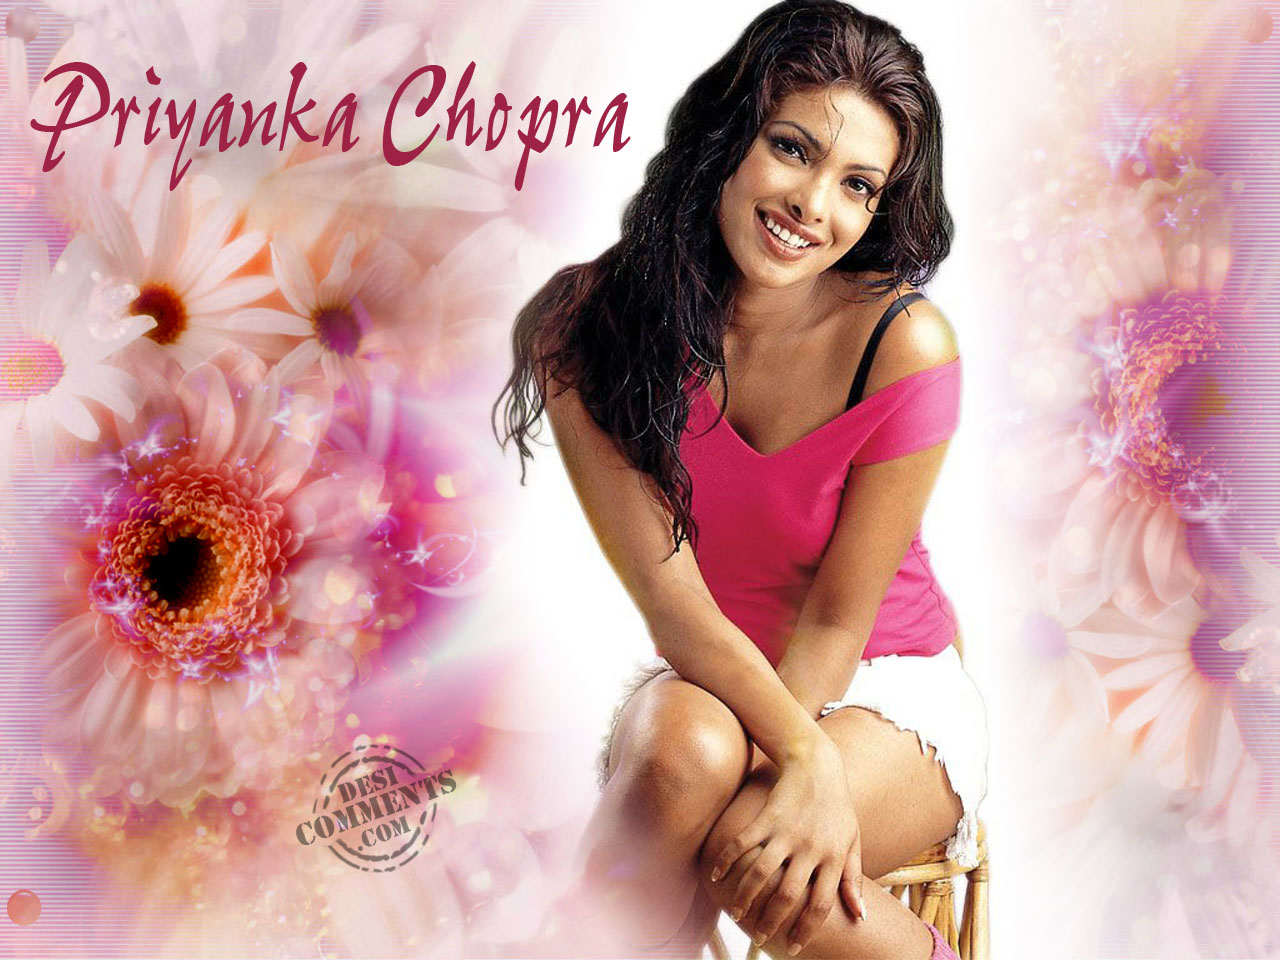 Top Punjabi Girl Wallpaper Priyanka Chopra Wallpapers Bollywood Wallpapers